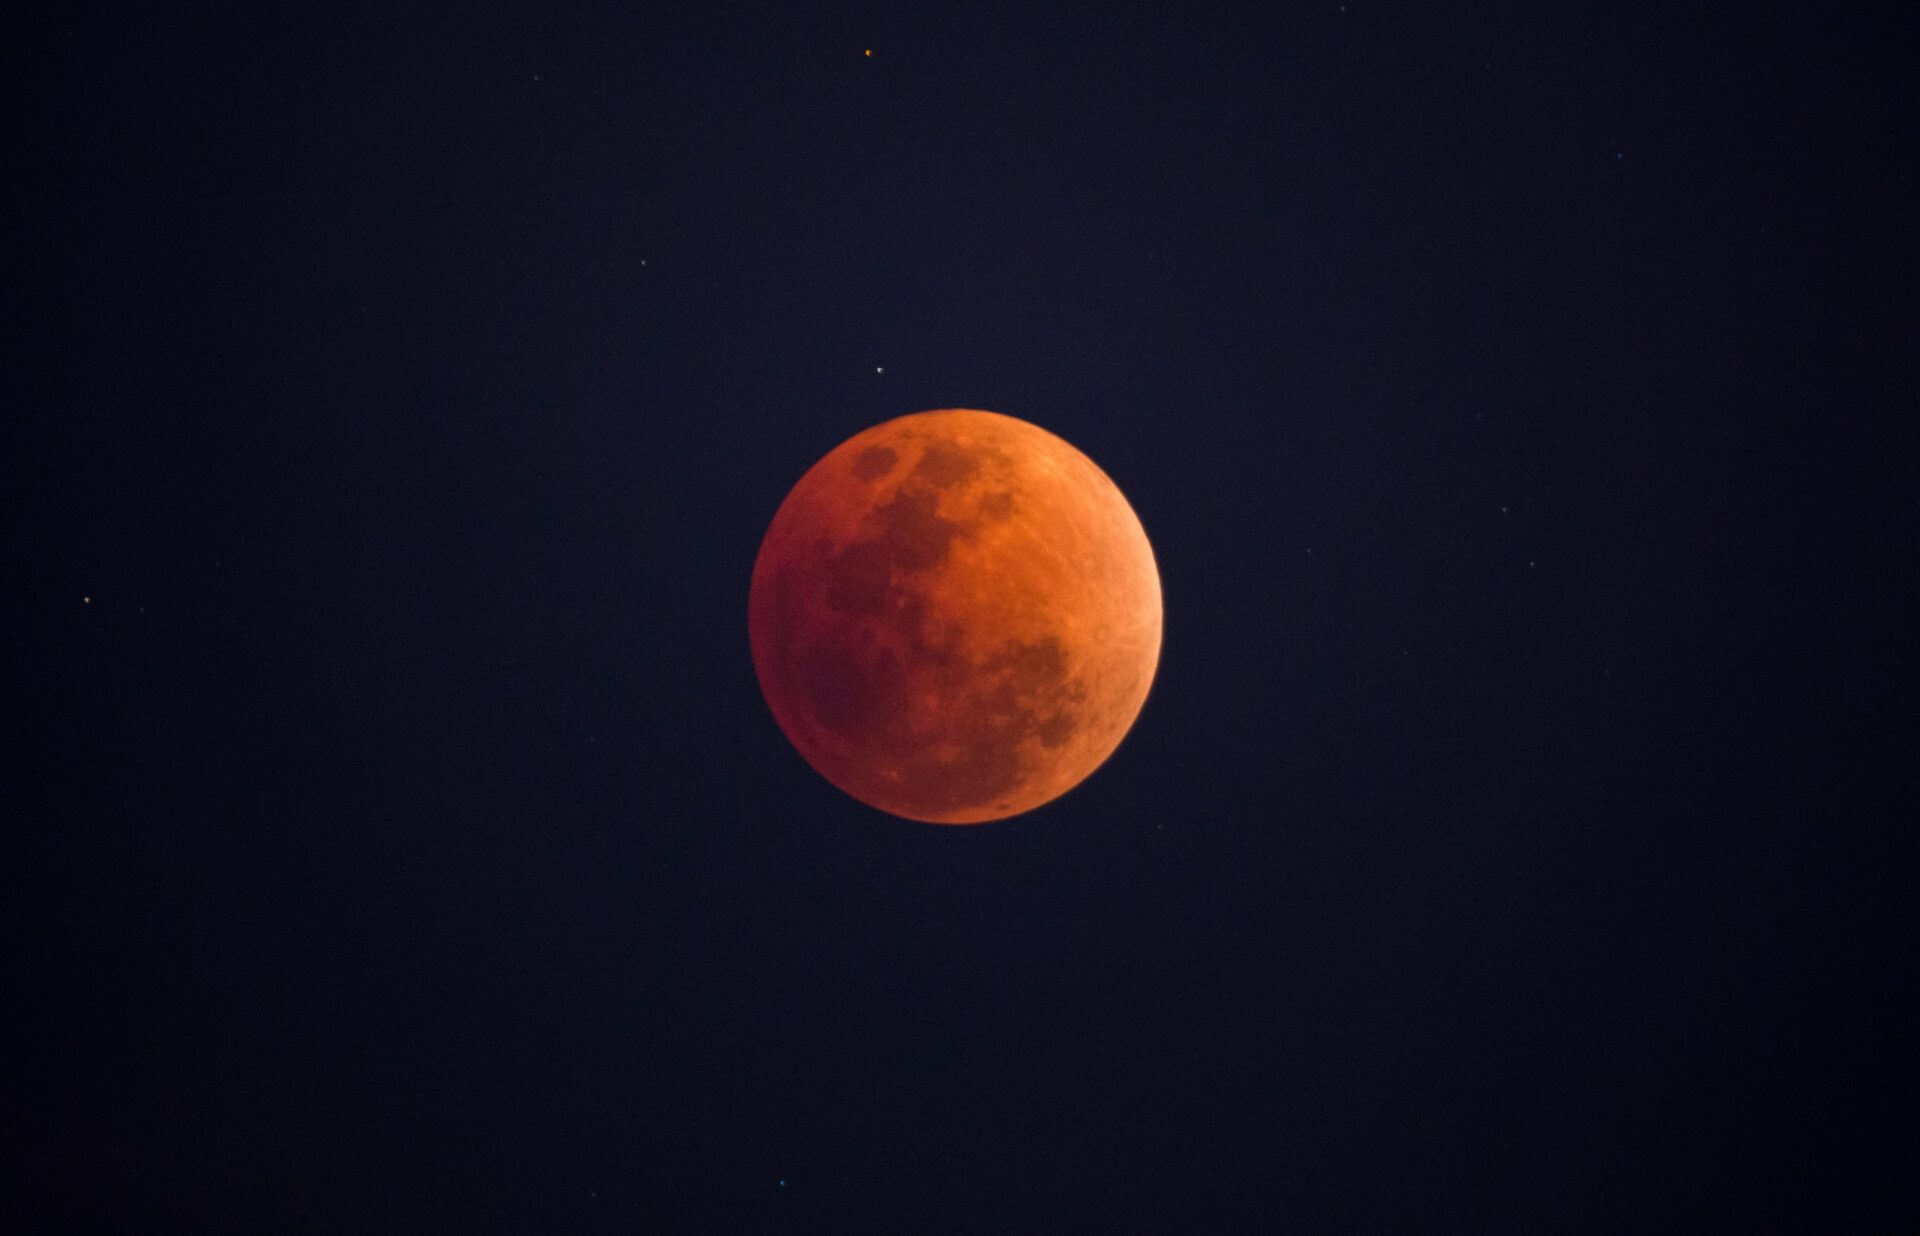 blood moon meaning pisces - photo #39